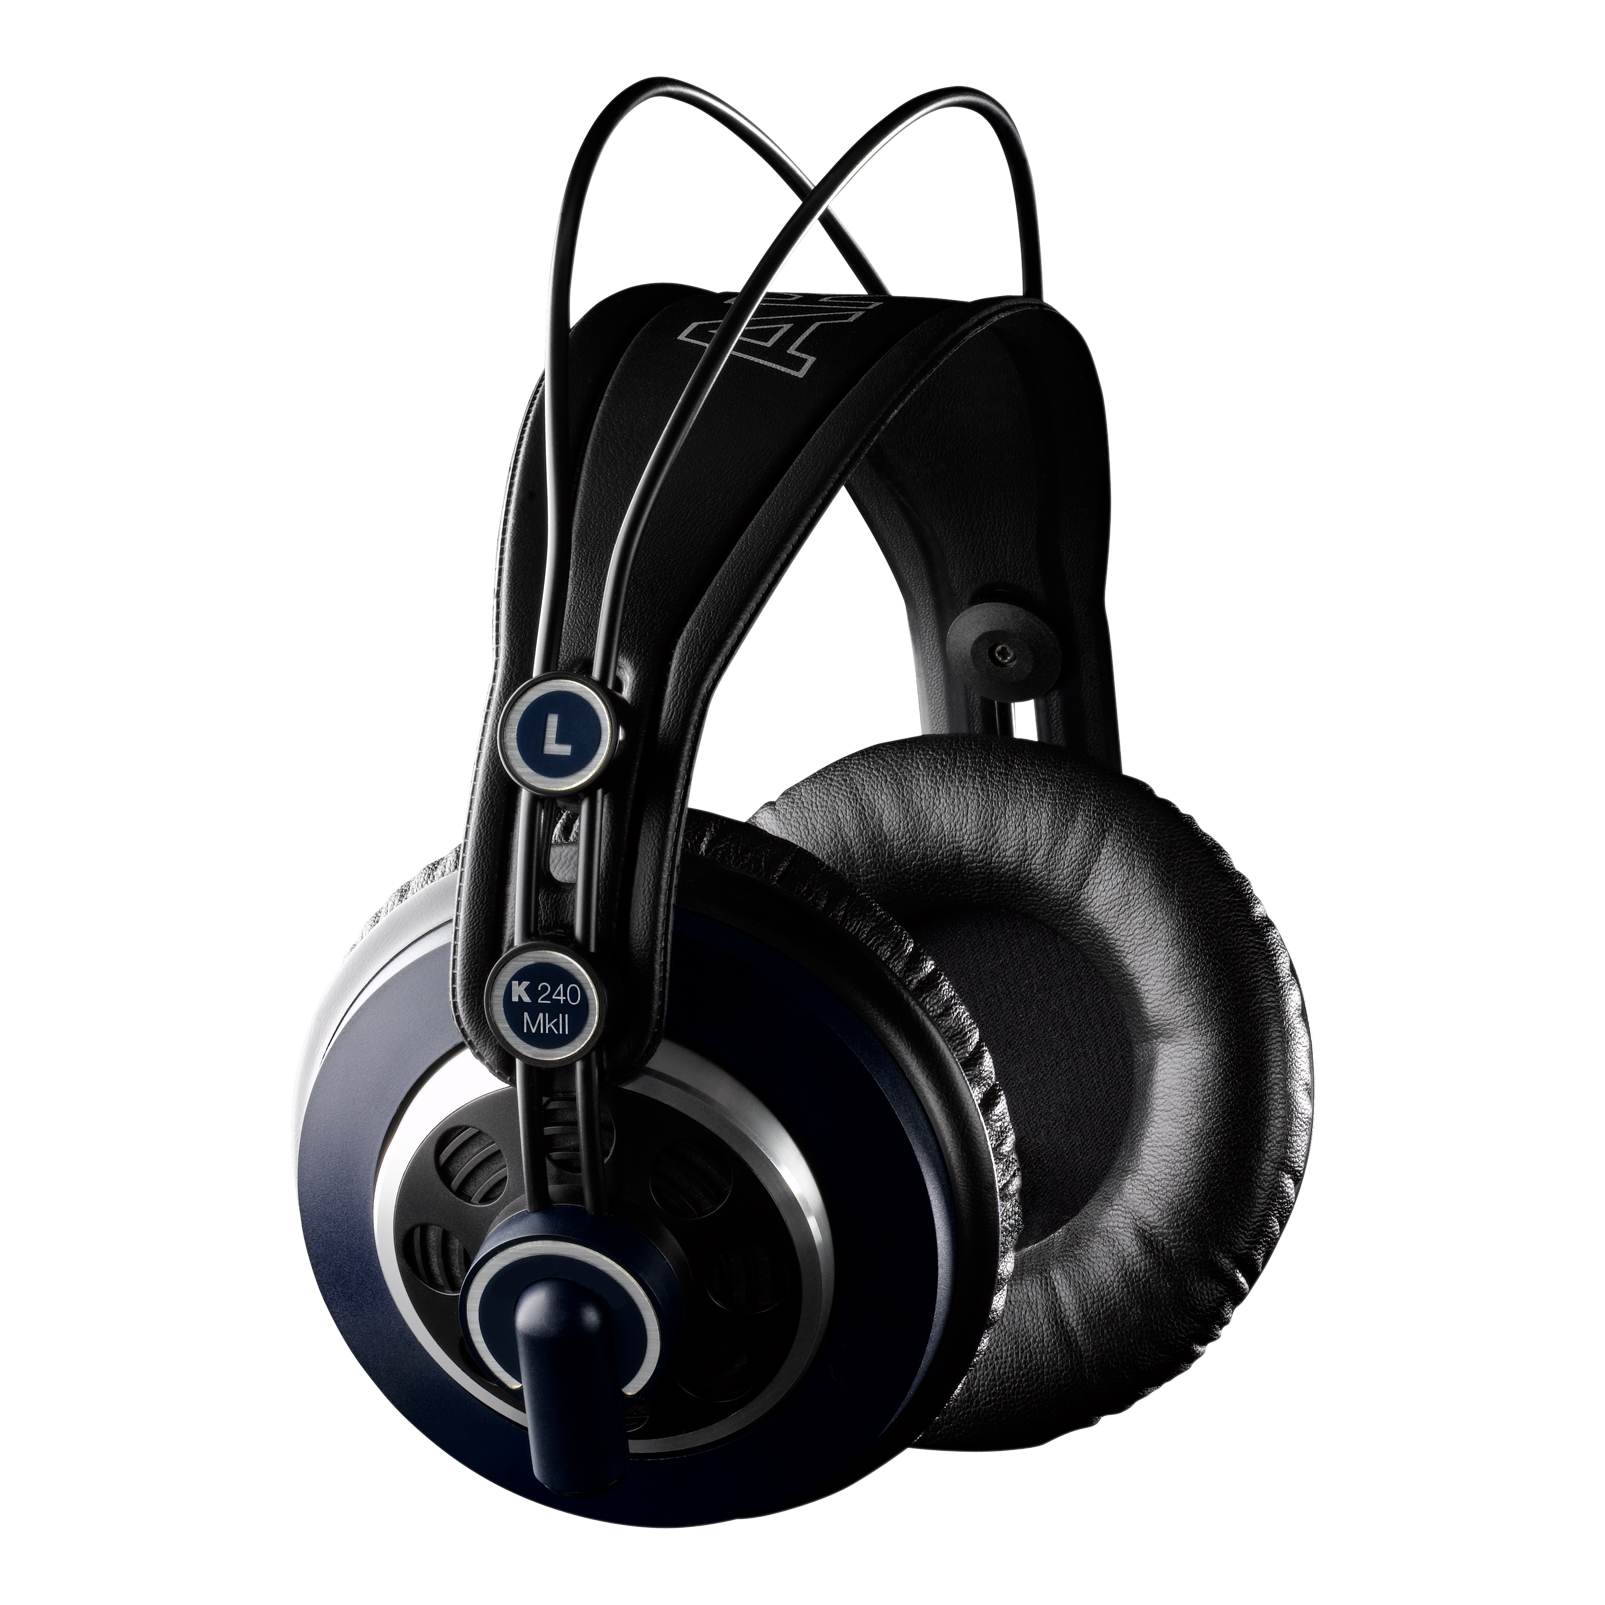 K240 MKII - Black - Professional studio headphones - Hero